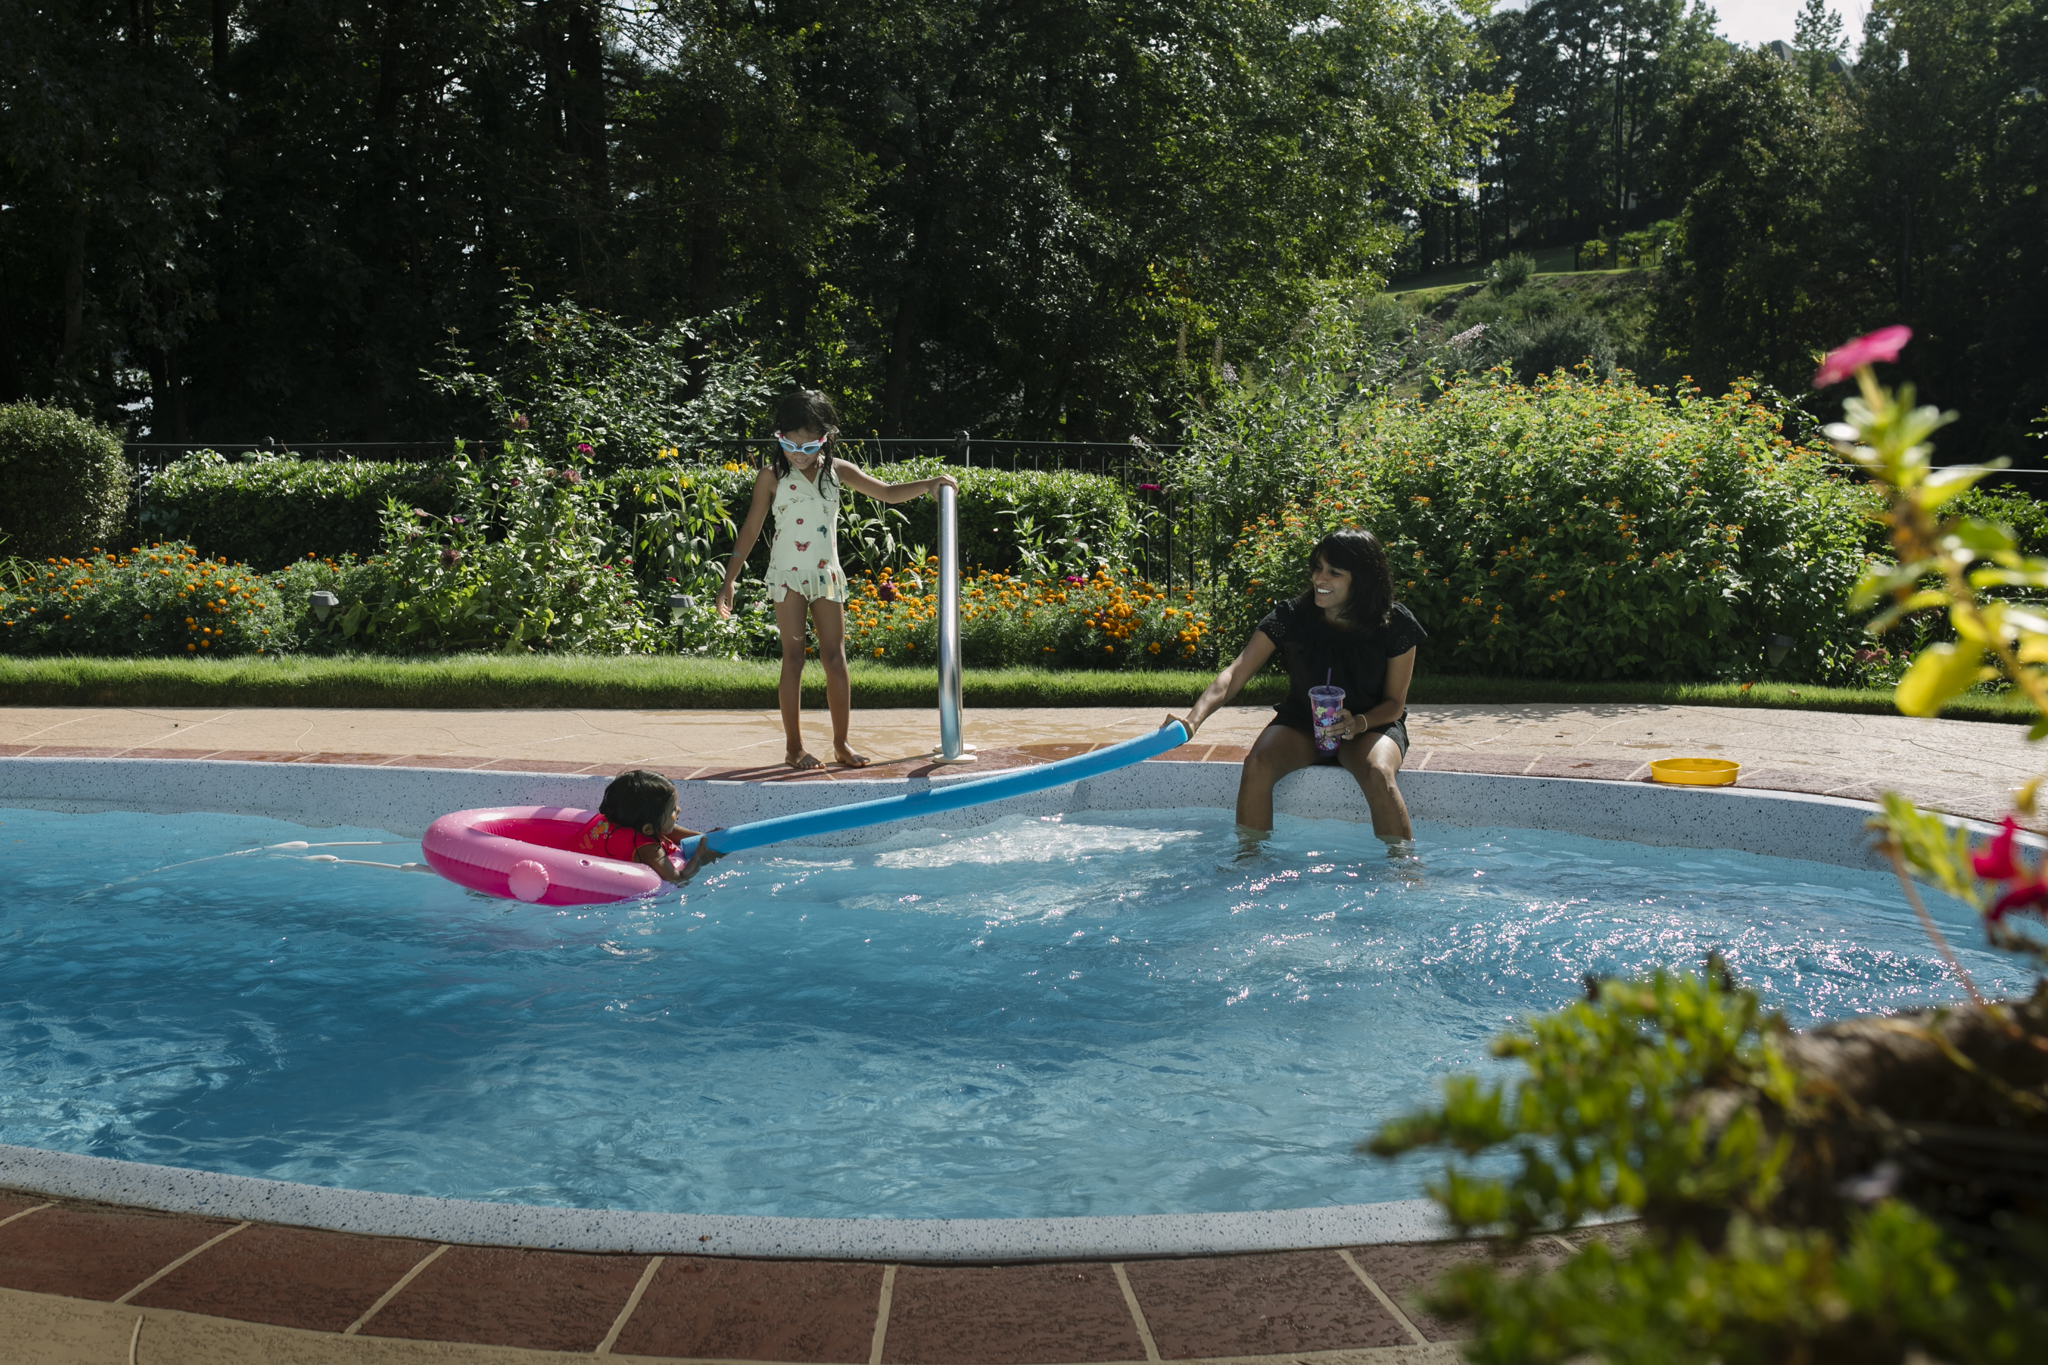 Mother holding a swimming noodle with her daughter in a pool while another daughter watches